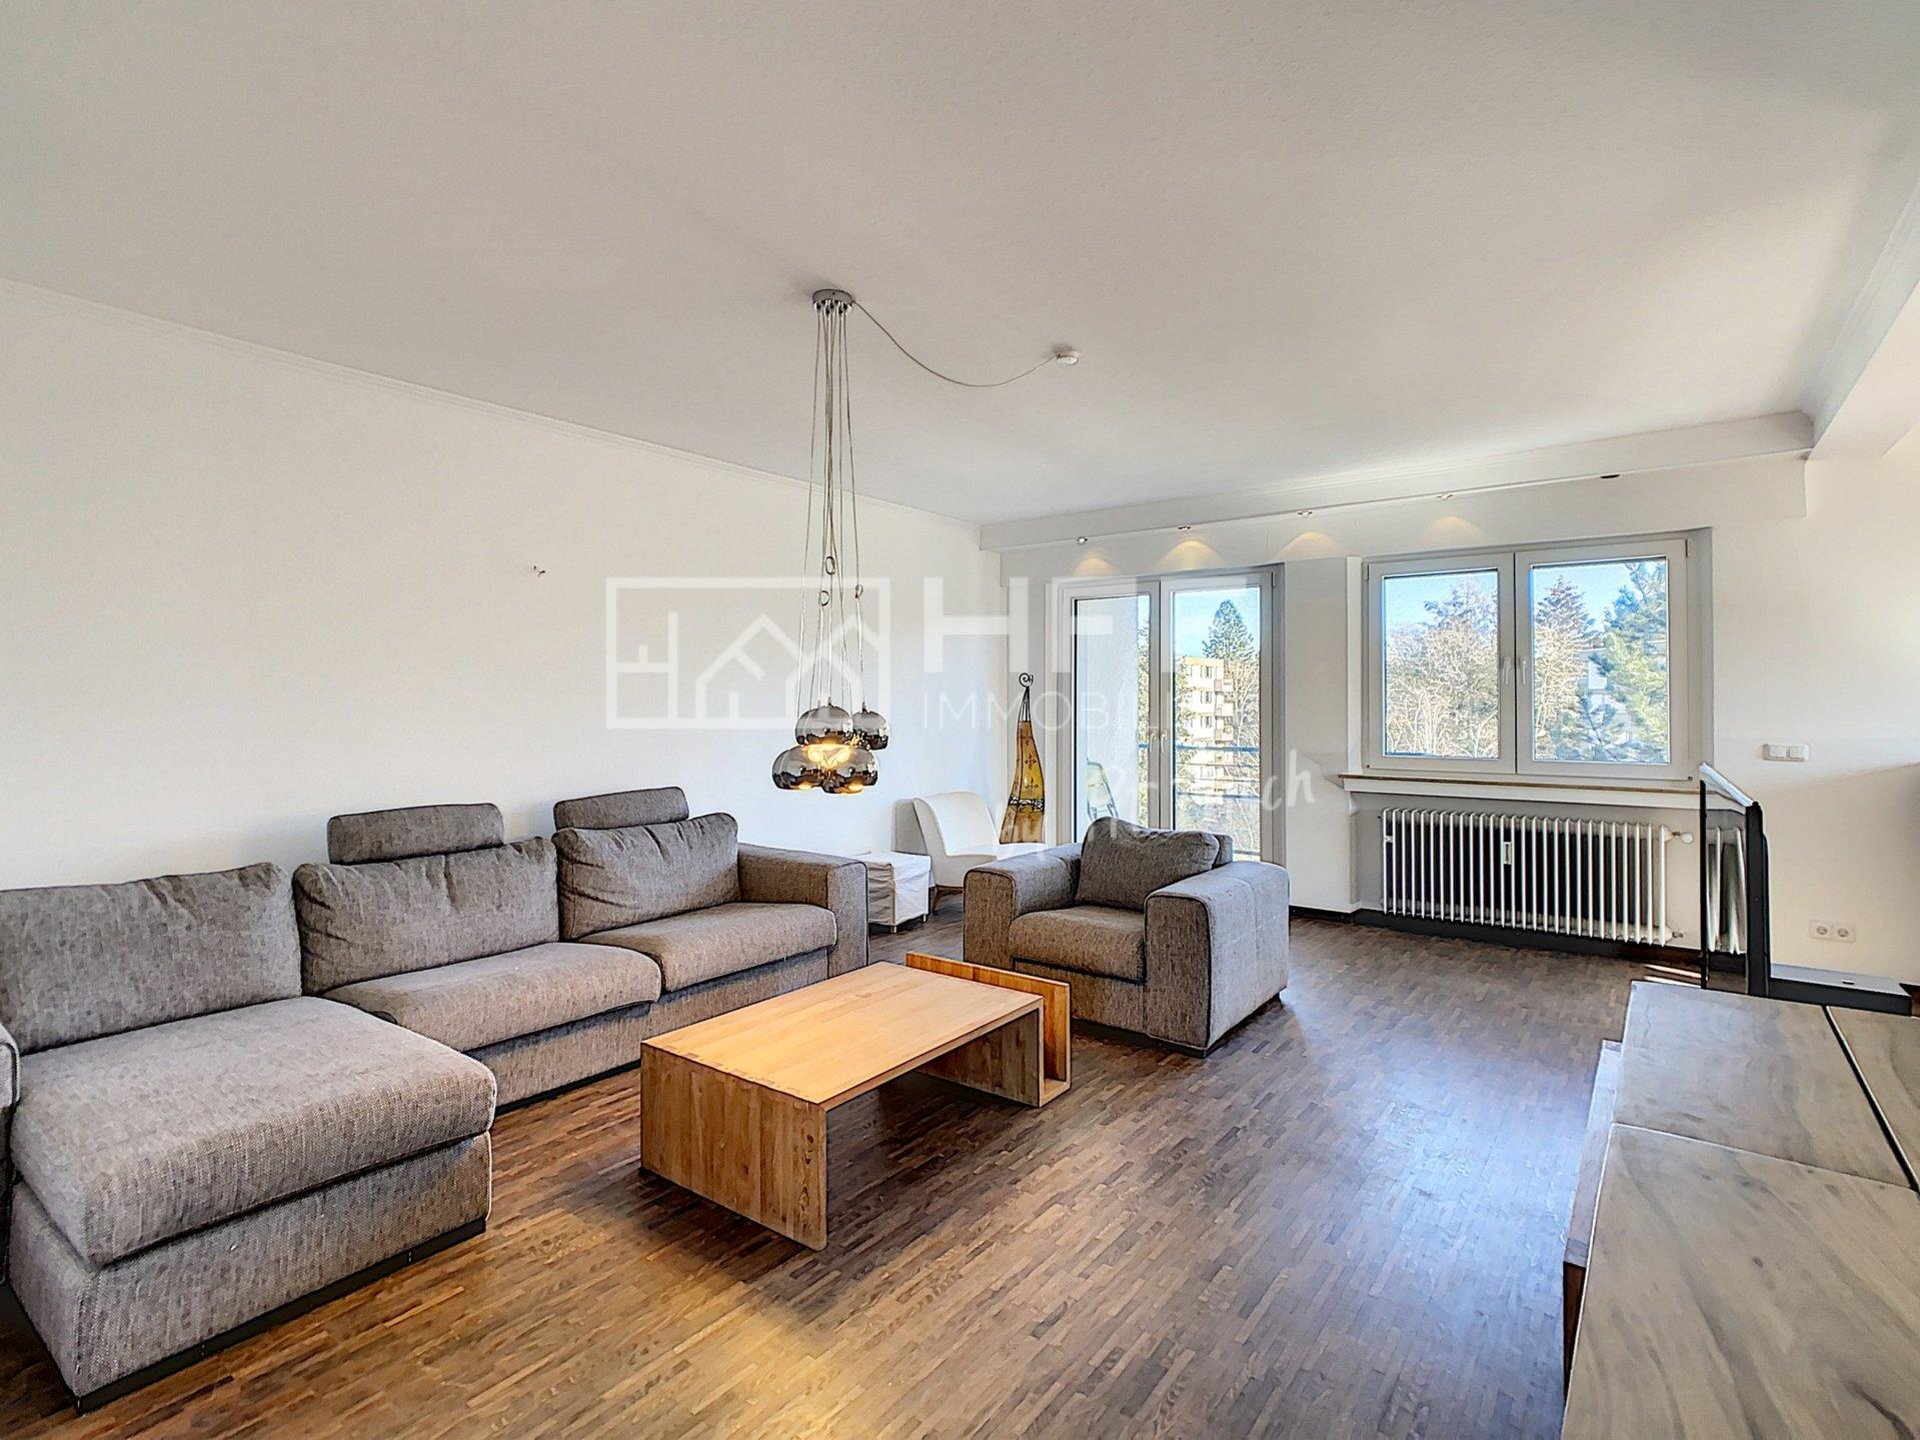 Fully furnished 2 bedroom in Luxembourg